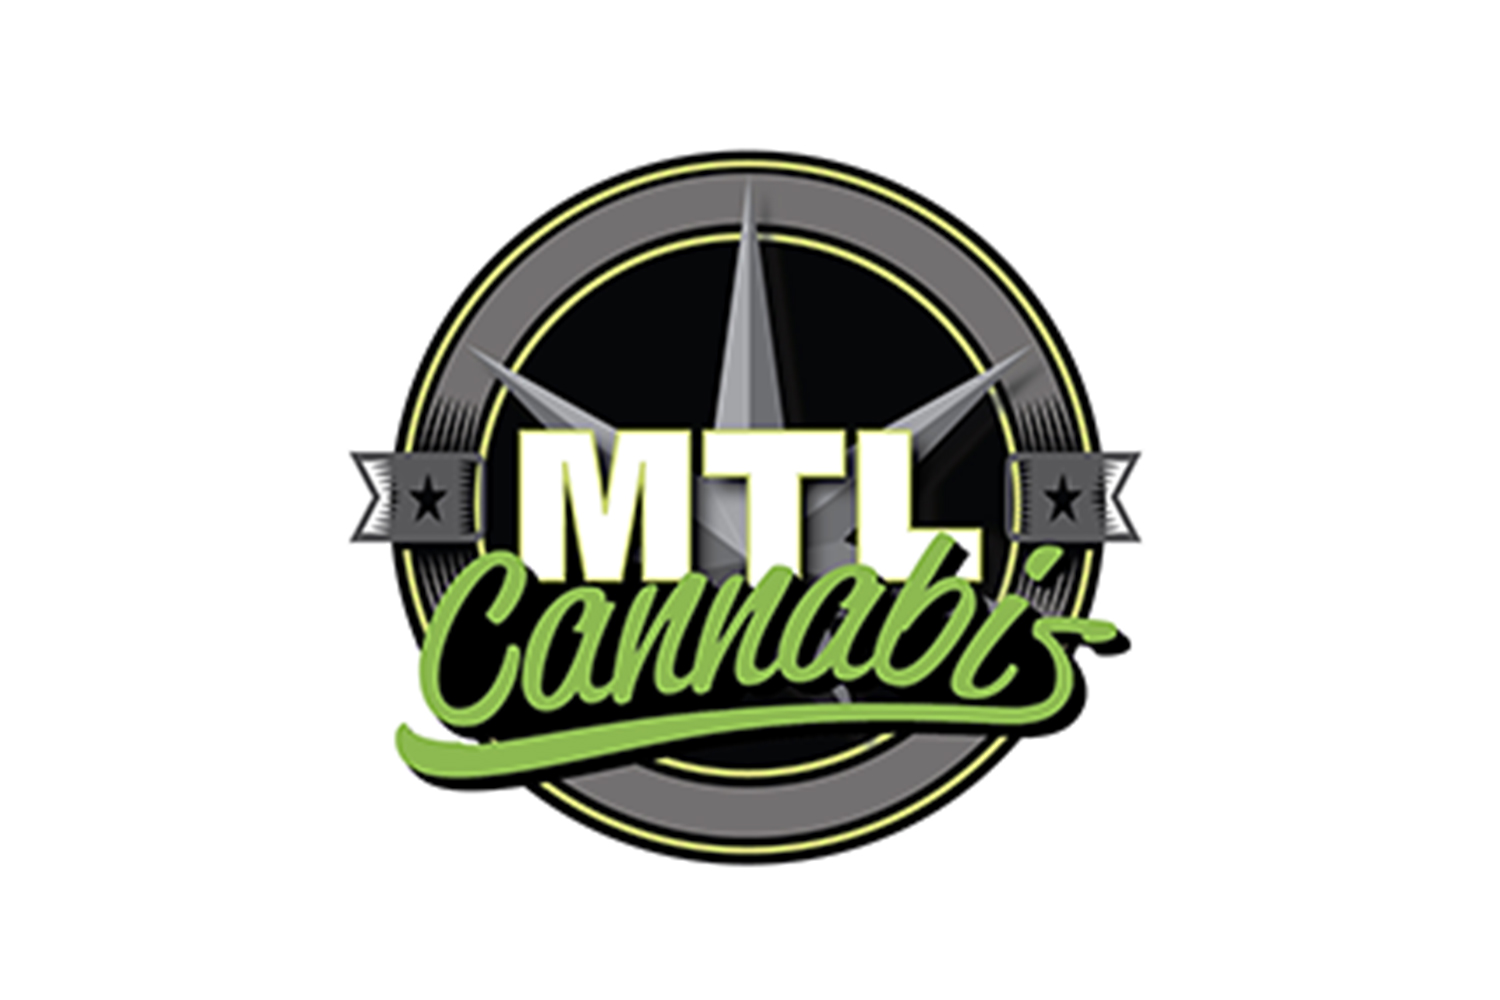 the green organic mtl-cannabis